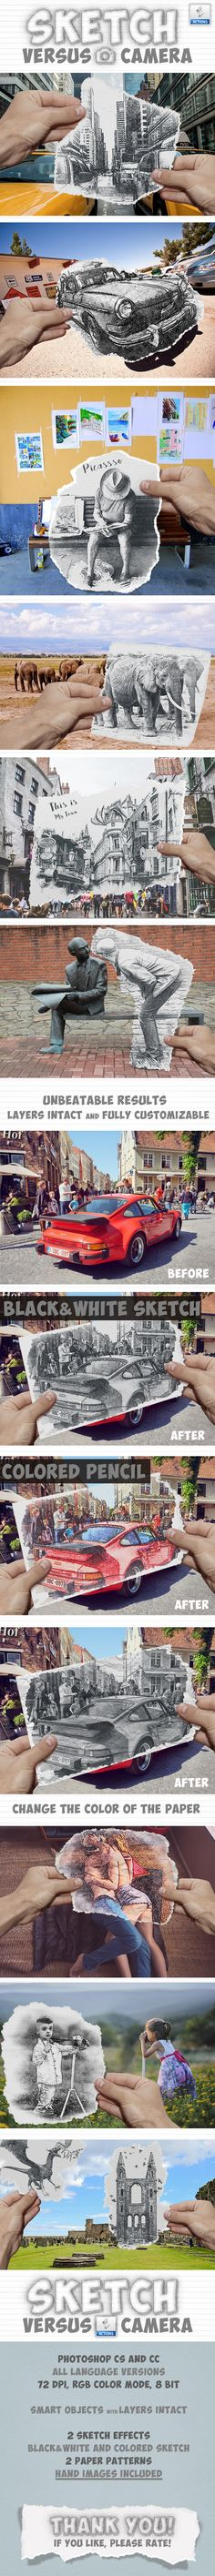 Pencil Sketch vs Camera Photo Effect Photoshop Action  #clever #ben heine style • Download ➝ https://graphicriver.net/item/pencil-sketch-vs-camera-photo-effect-photoshop-action/18266870?ref=pxcr